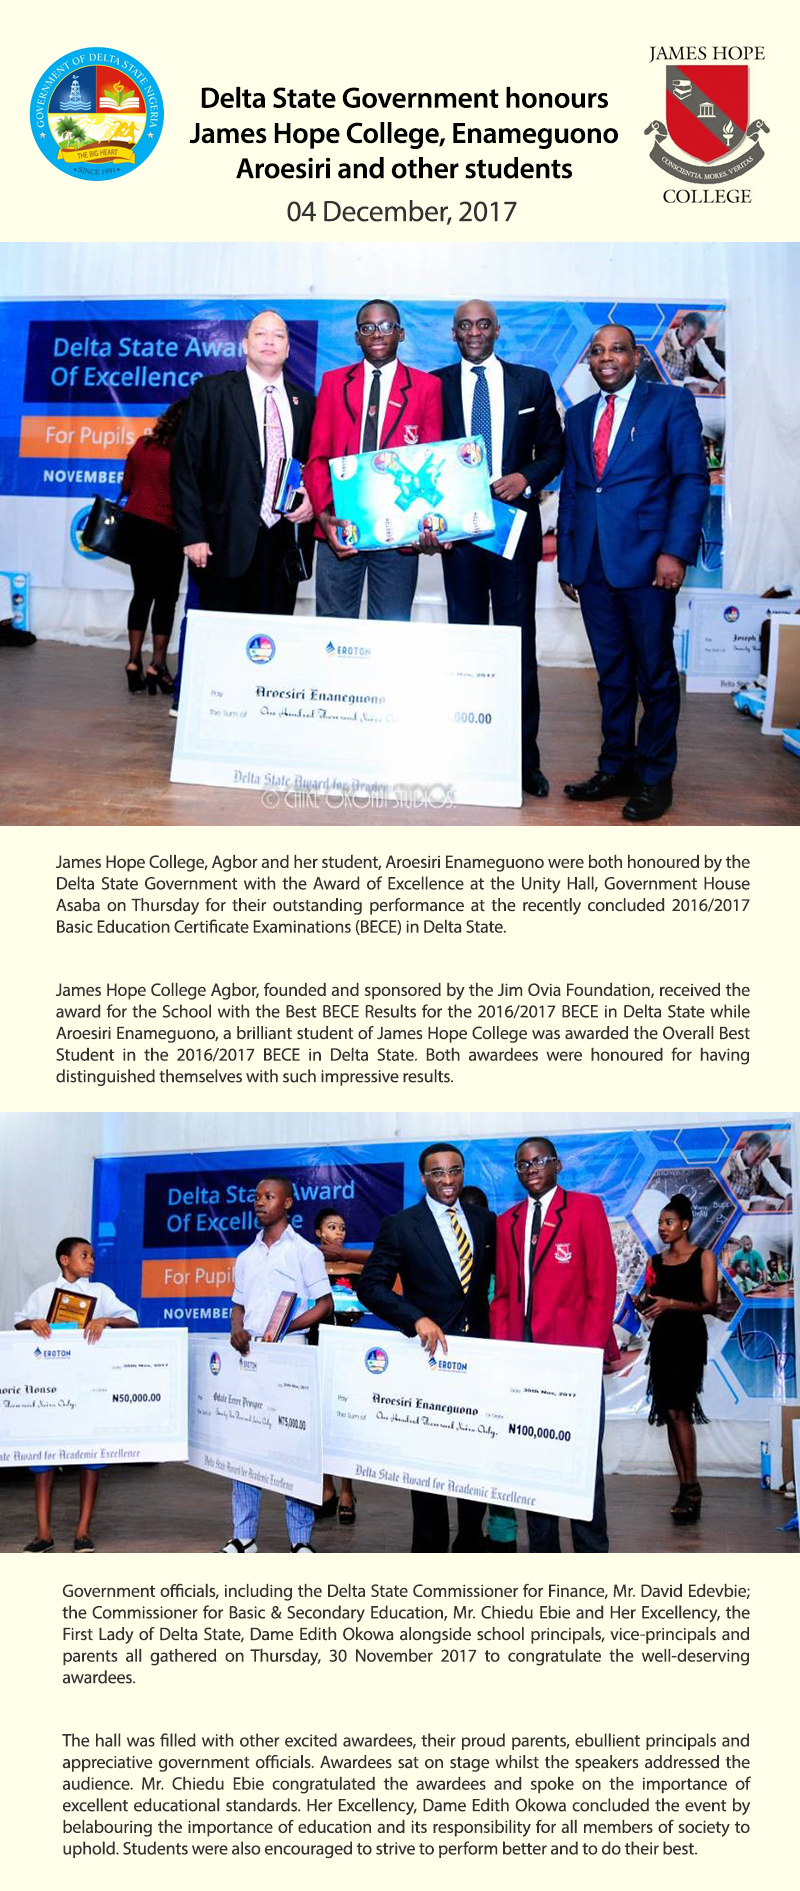 Delta-State-Honours School and Students-1